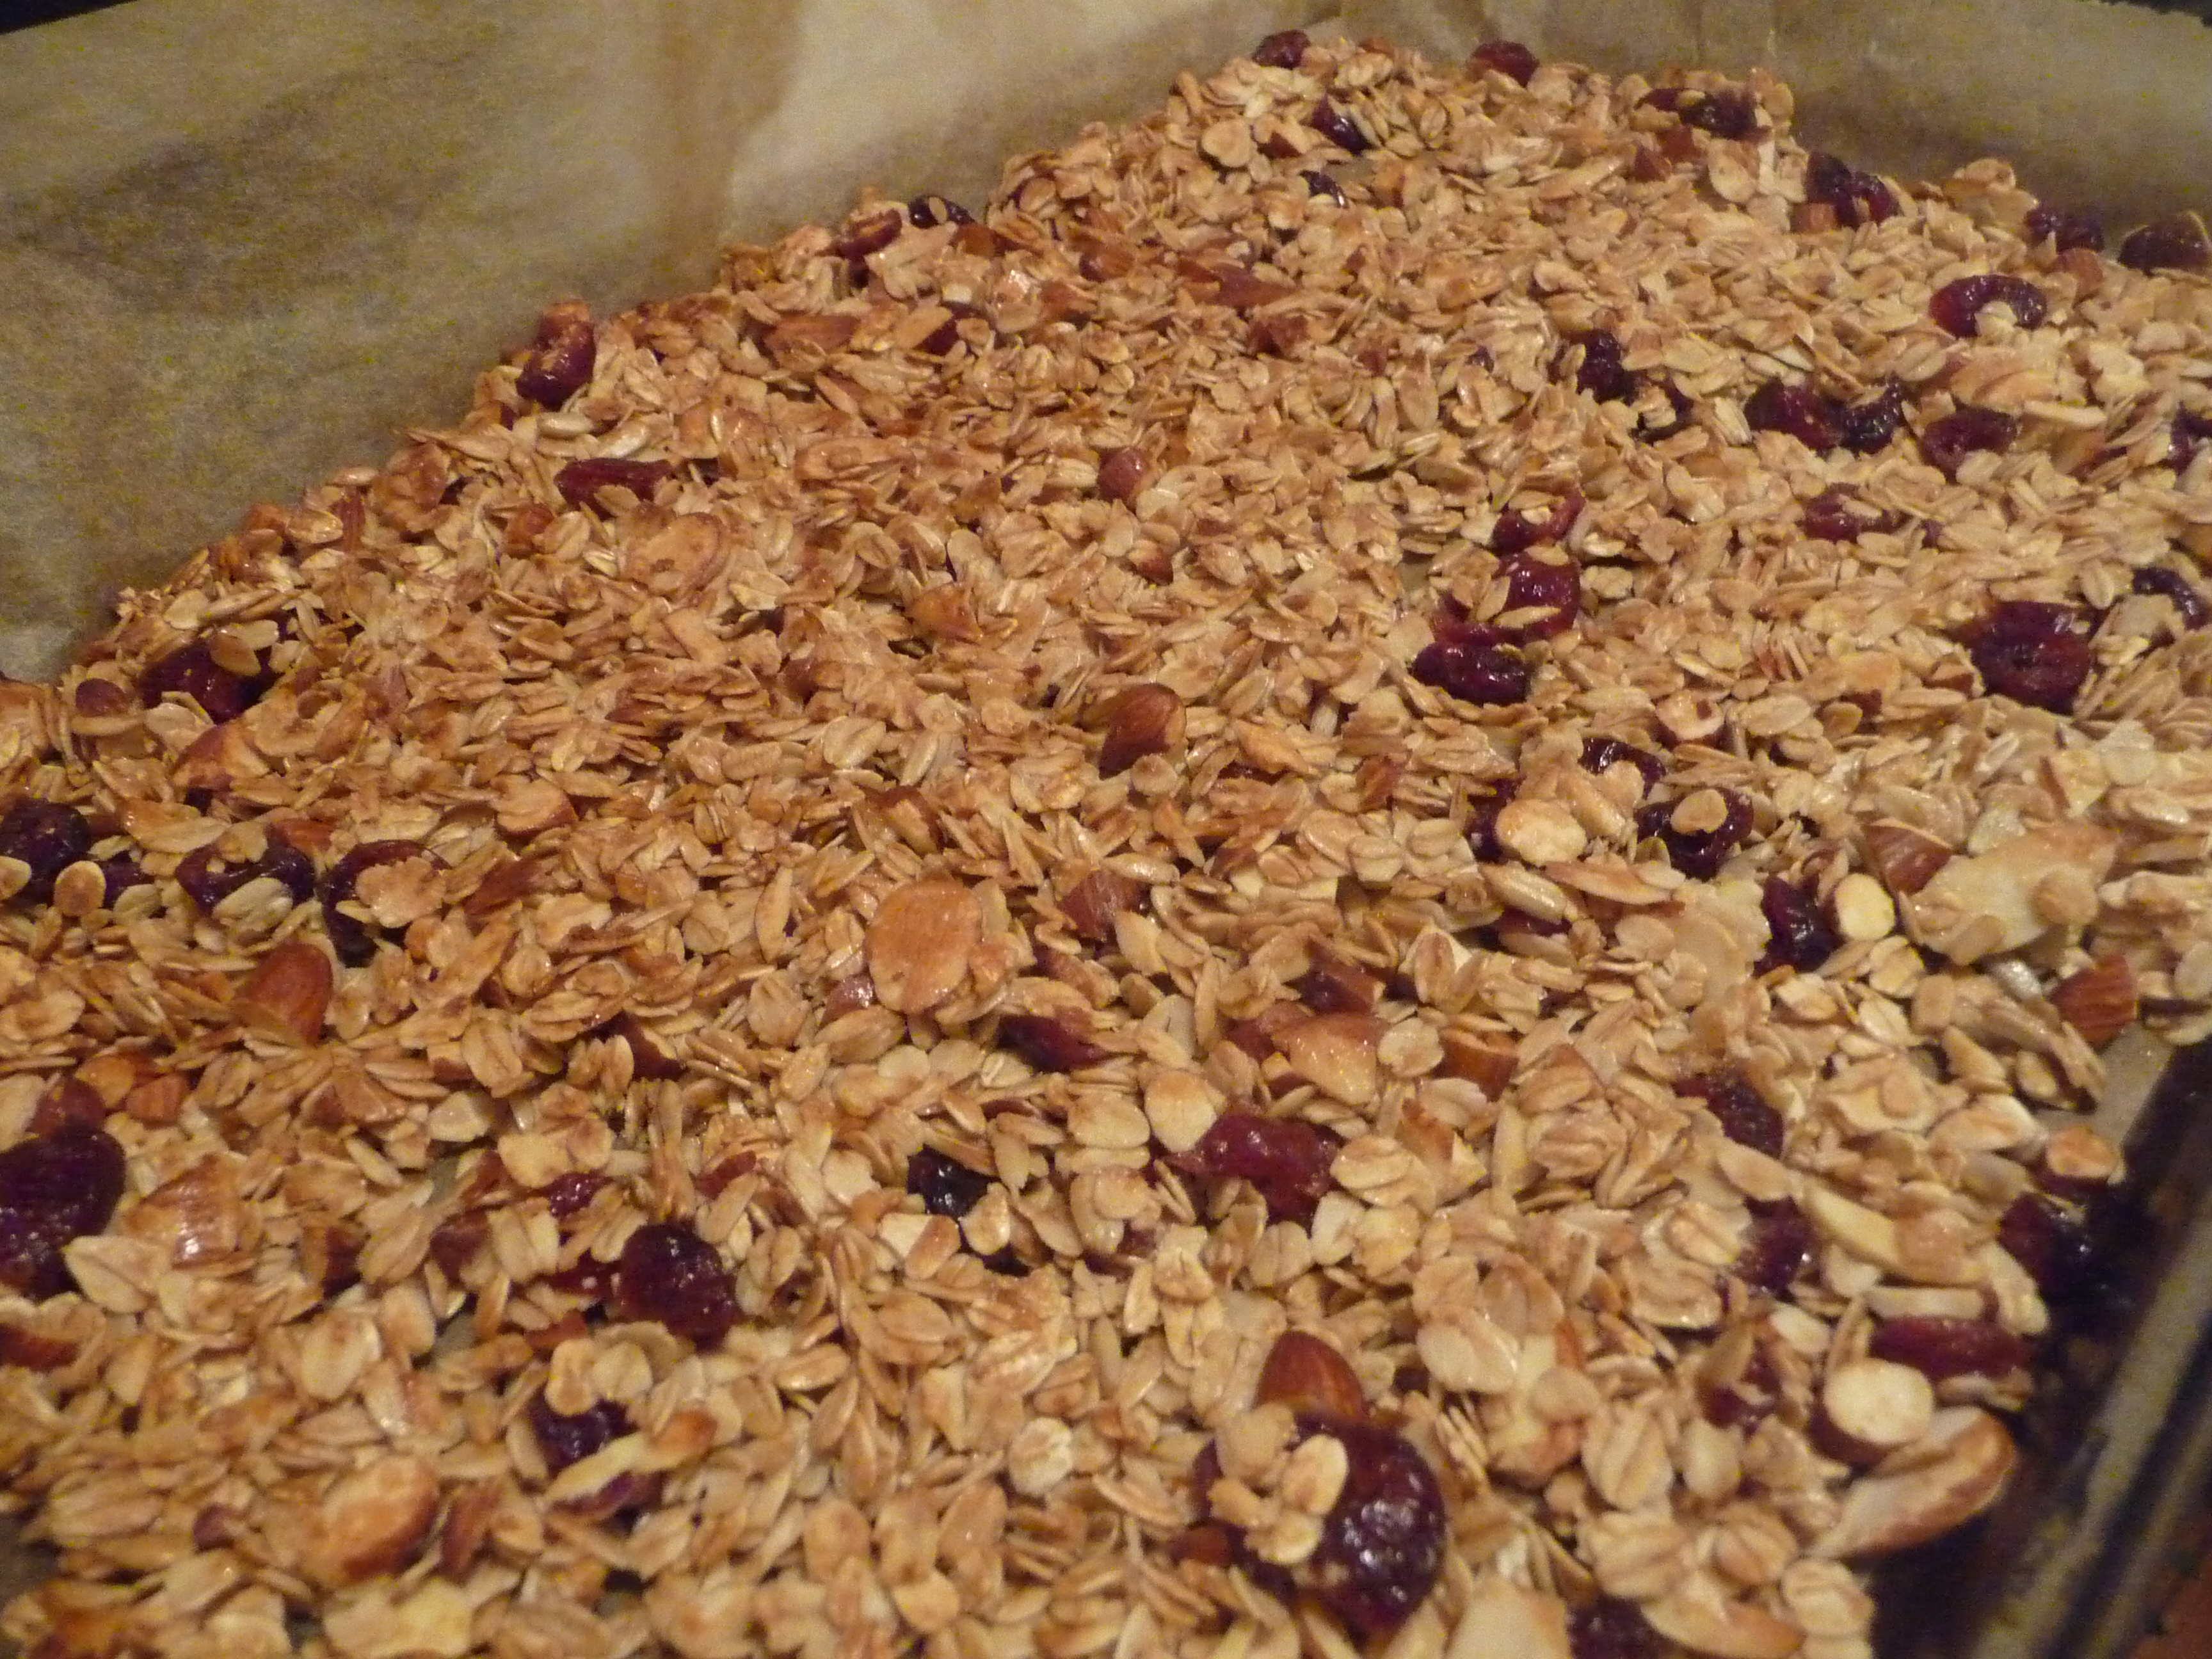 Granola after baking